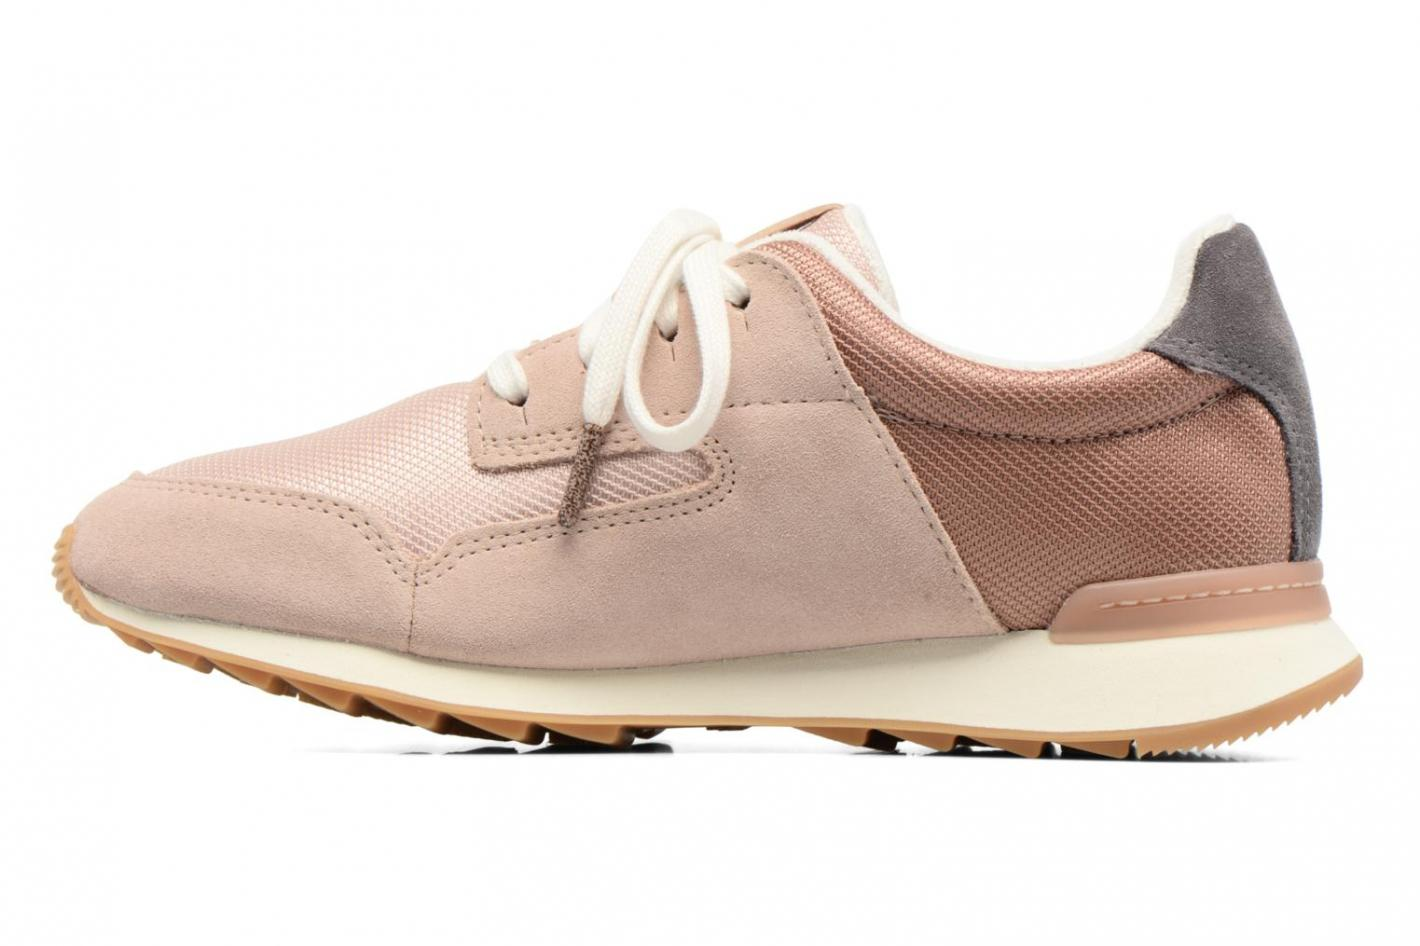 clarks shoes women